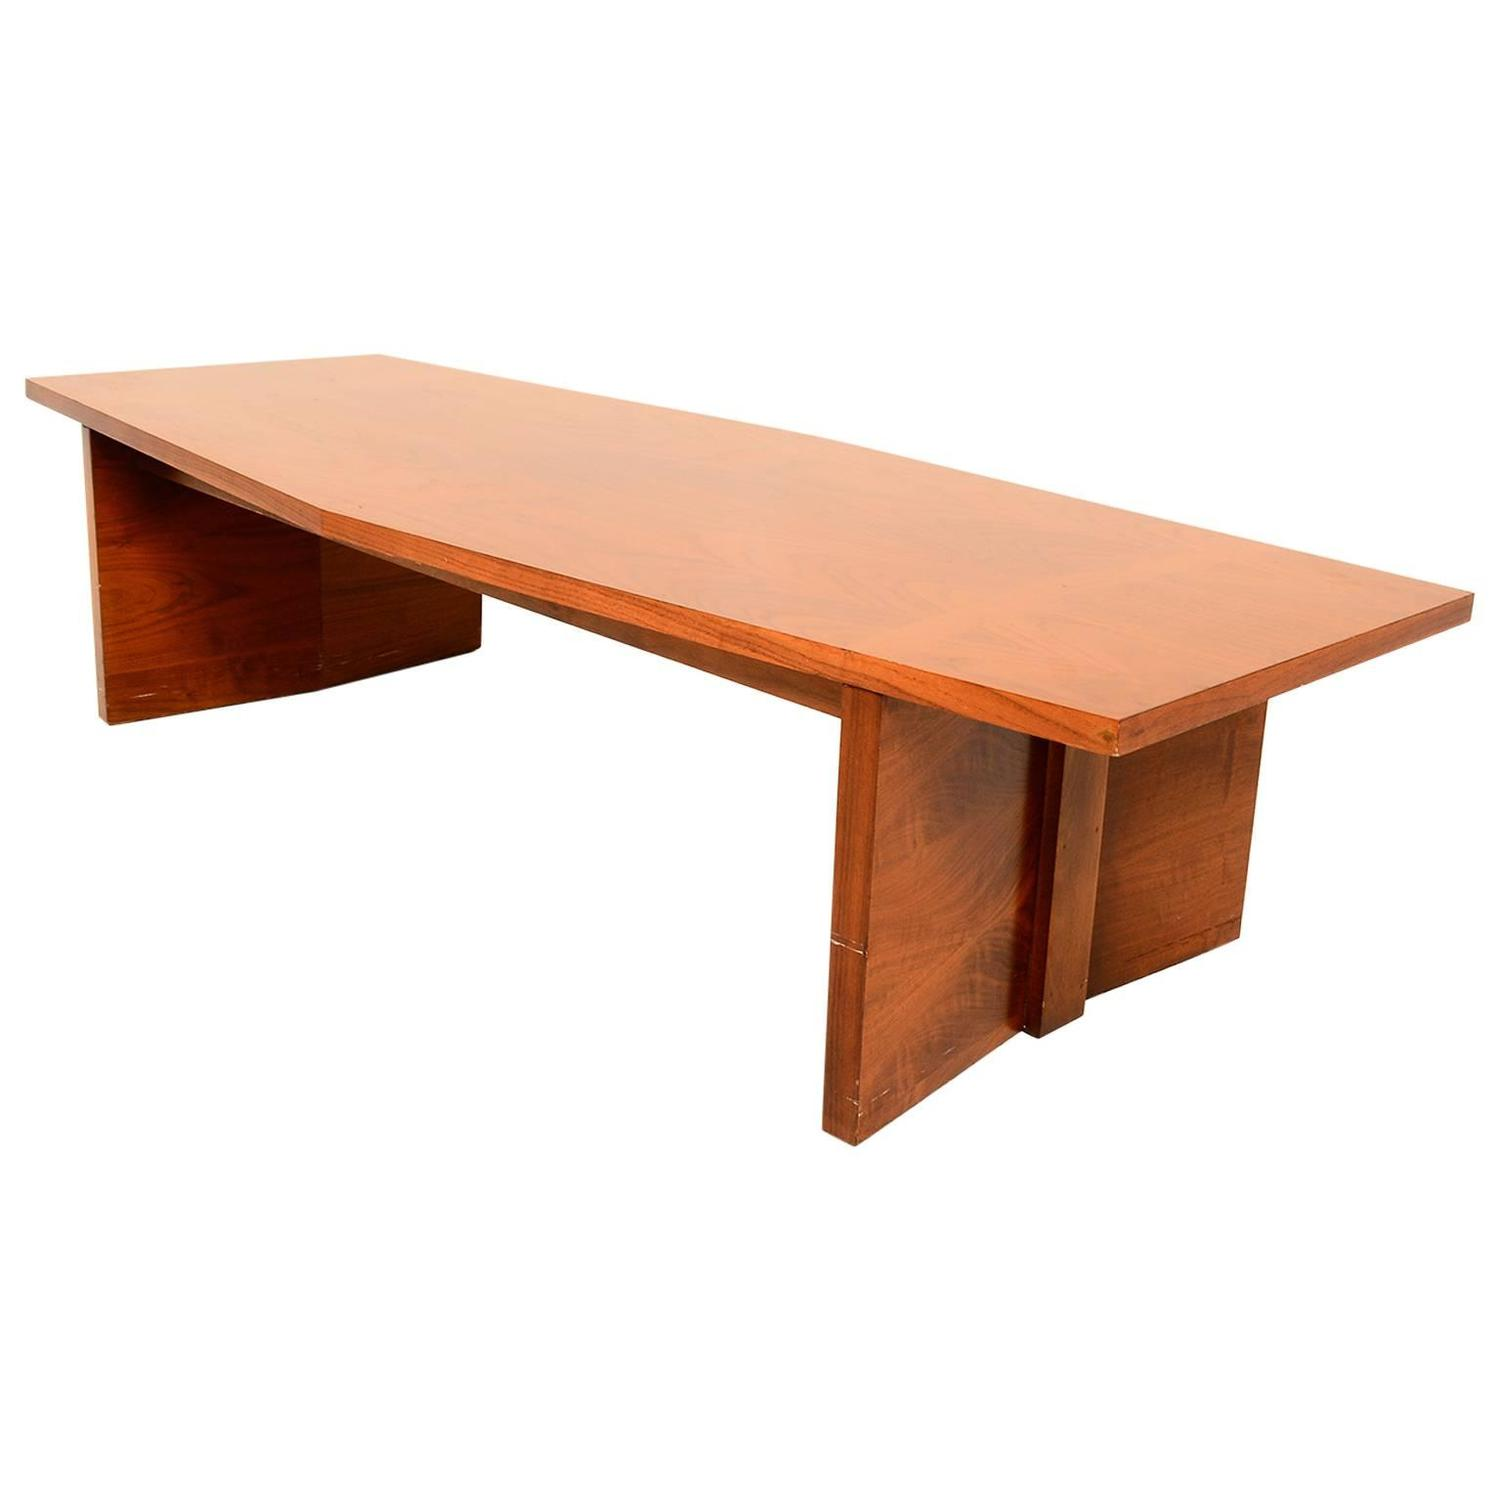 Rare Mid Century Modern Lane Coffee Table For Sale At 1stdibs